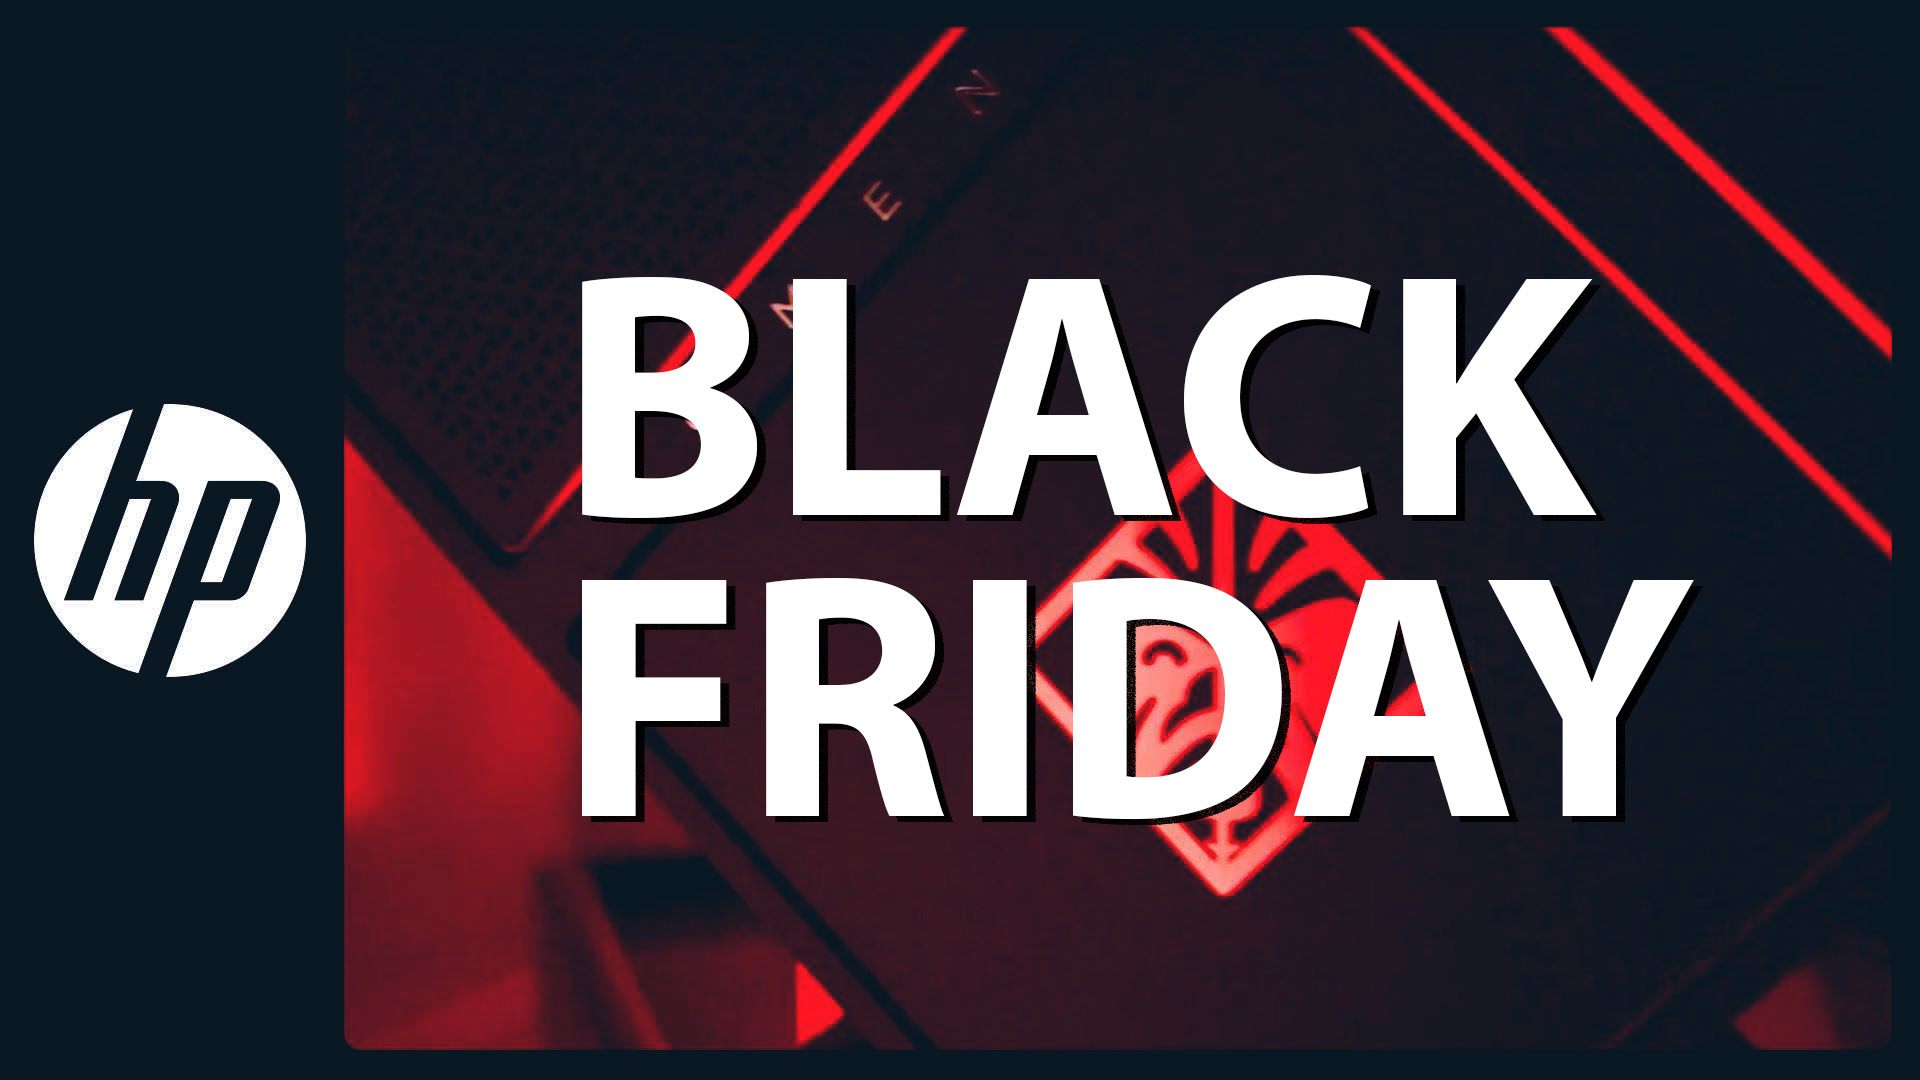 Black Frida Hp S Massive Black Friday Sale Is Now Live Insane Deals With Up